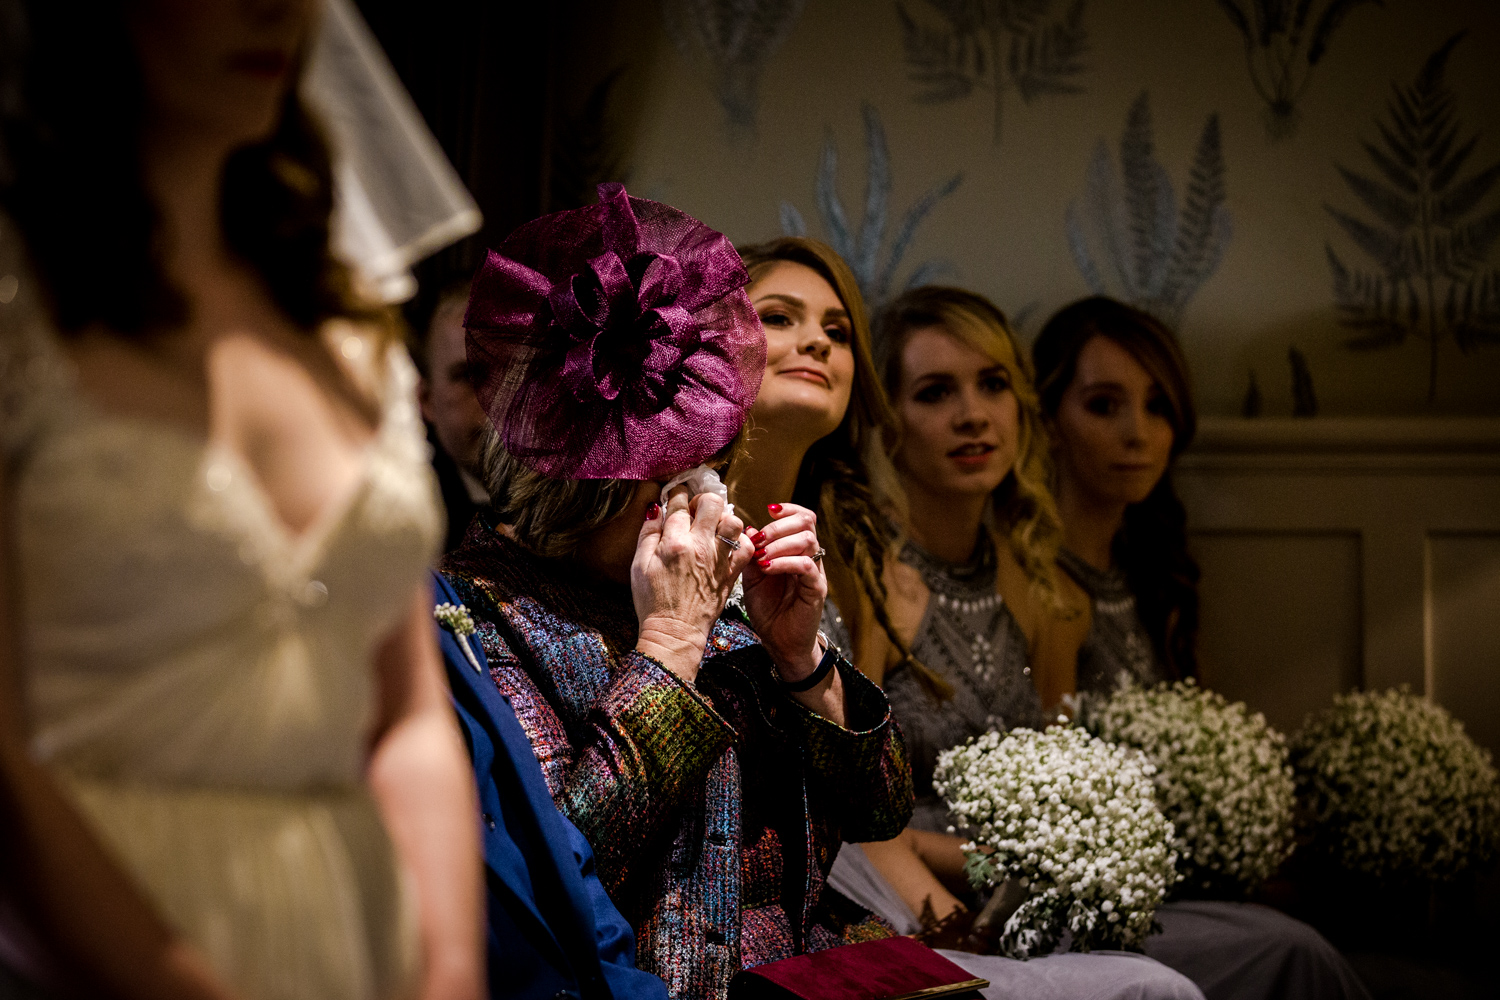 Mother of the bride cries during the wedding at Great John Street Hotel